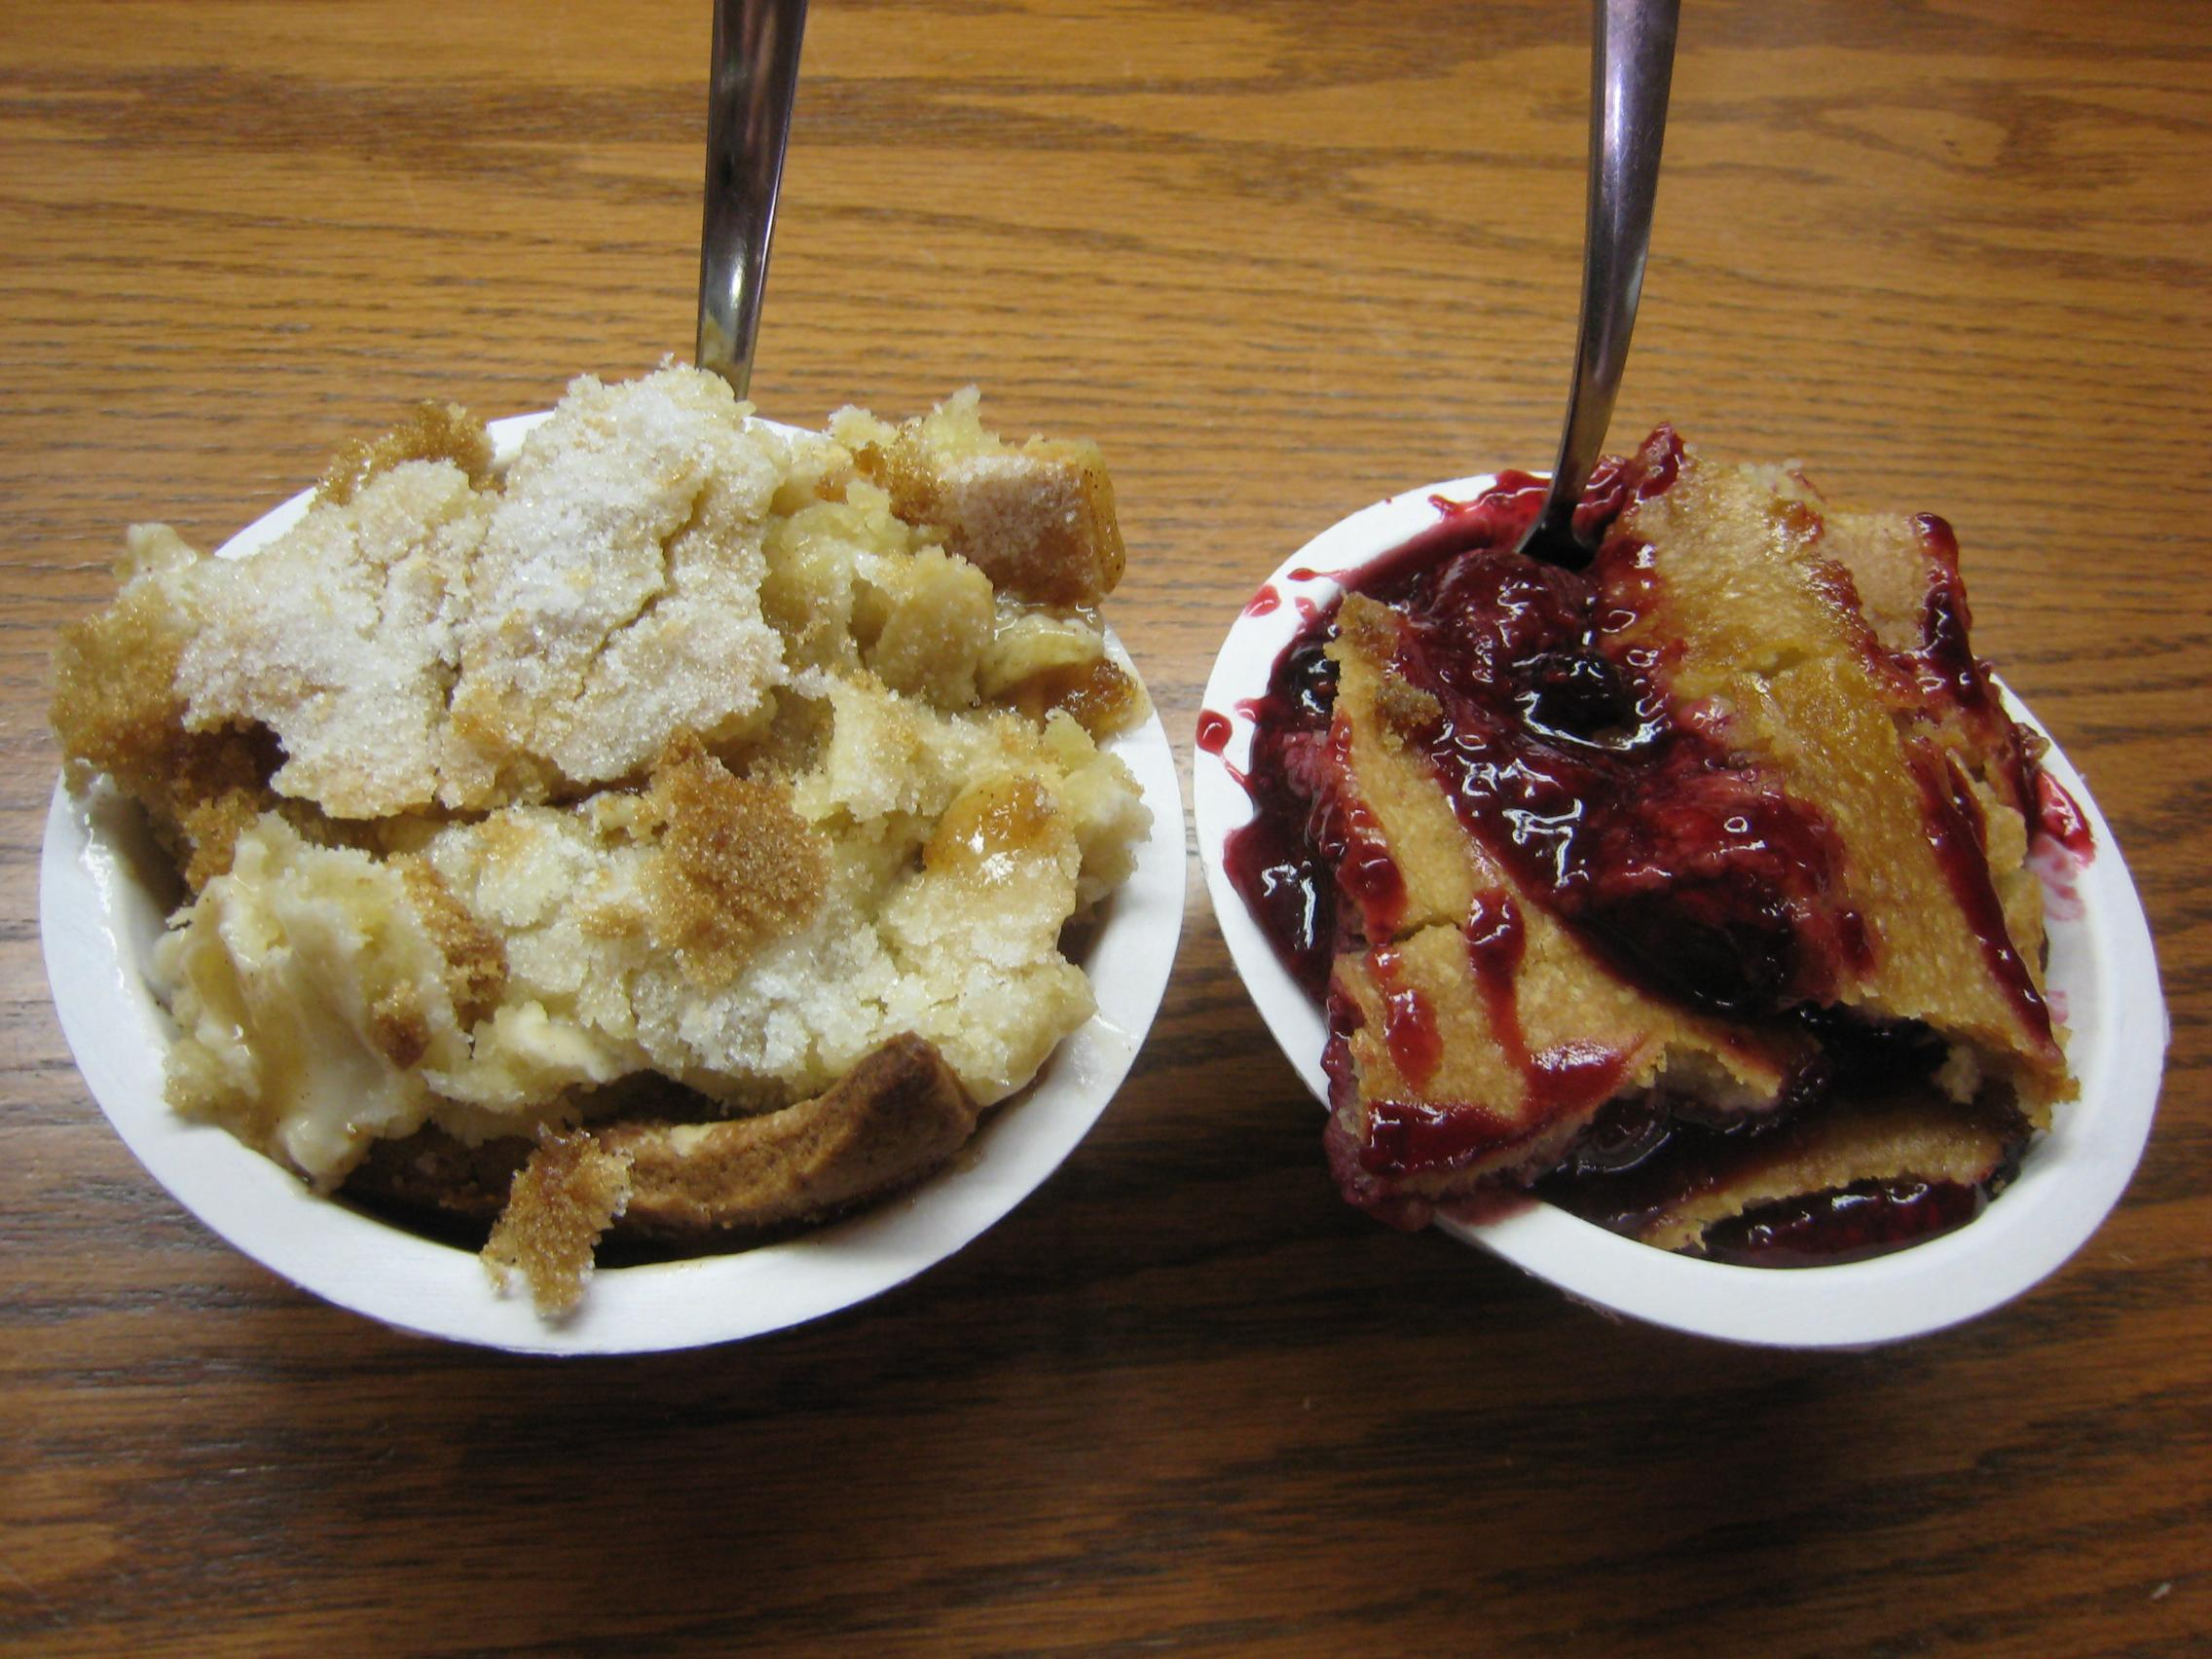 Lexington Barbecue #1, Cobbler